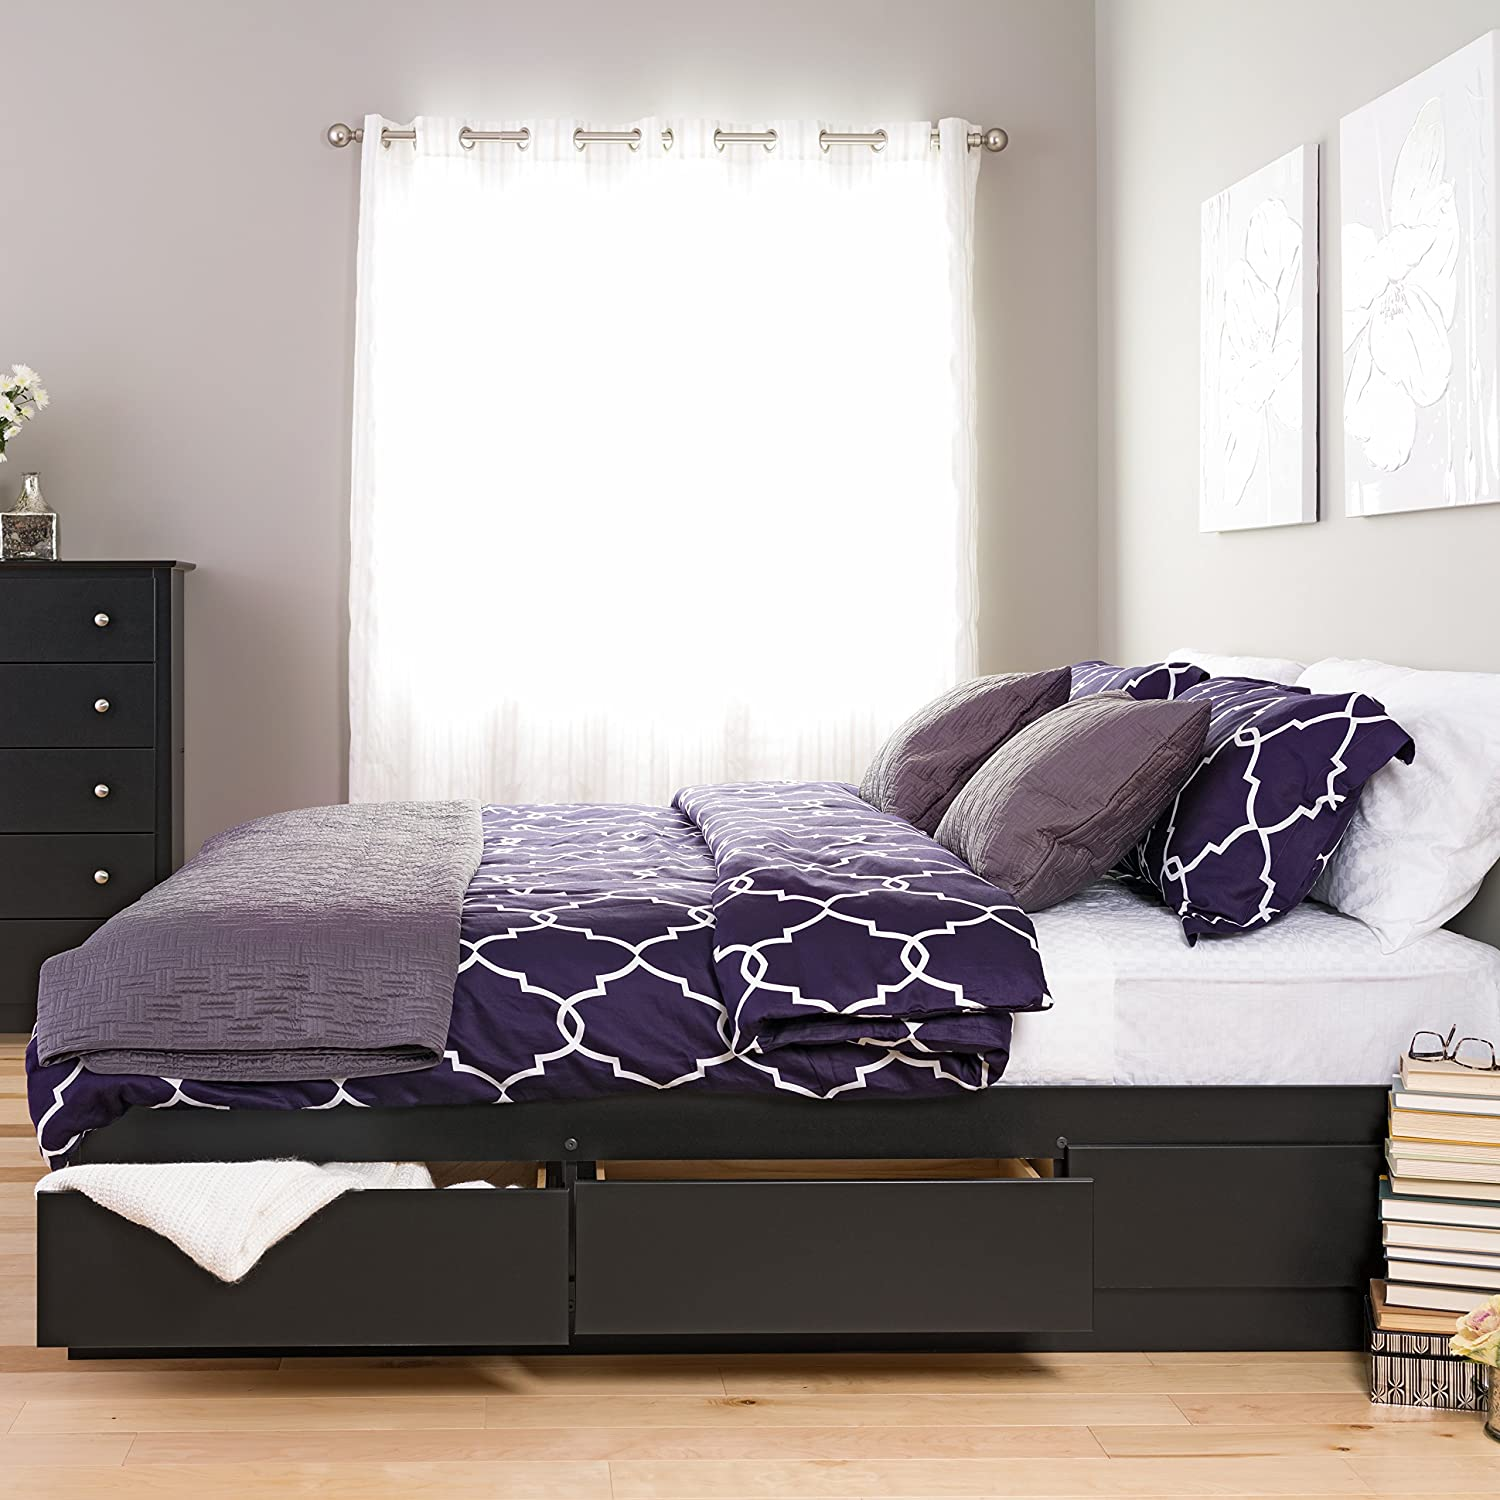 Amazon.com: Black King Mate\'s Platform Storage Bed with 6 Drawers ...